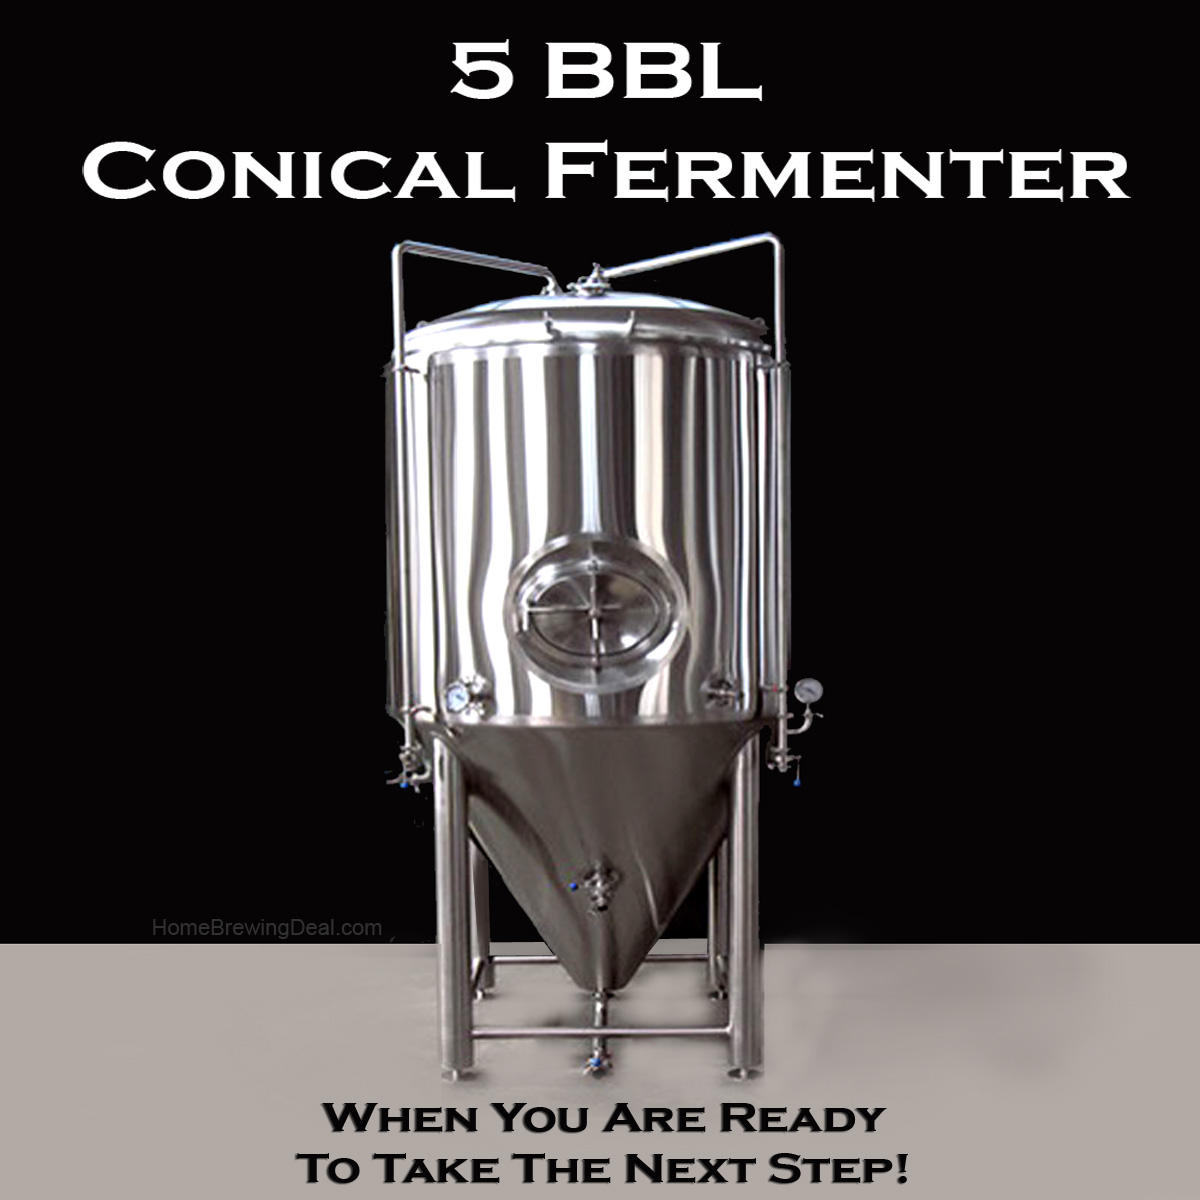 Stainless Steel Conical Fermenter 175